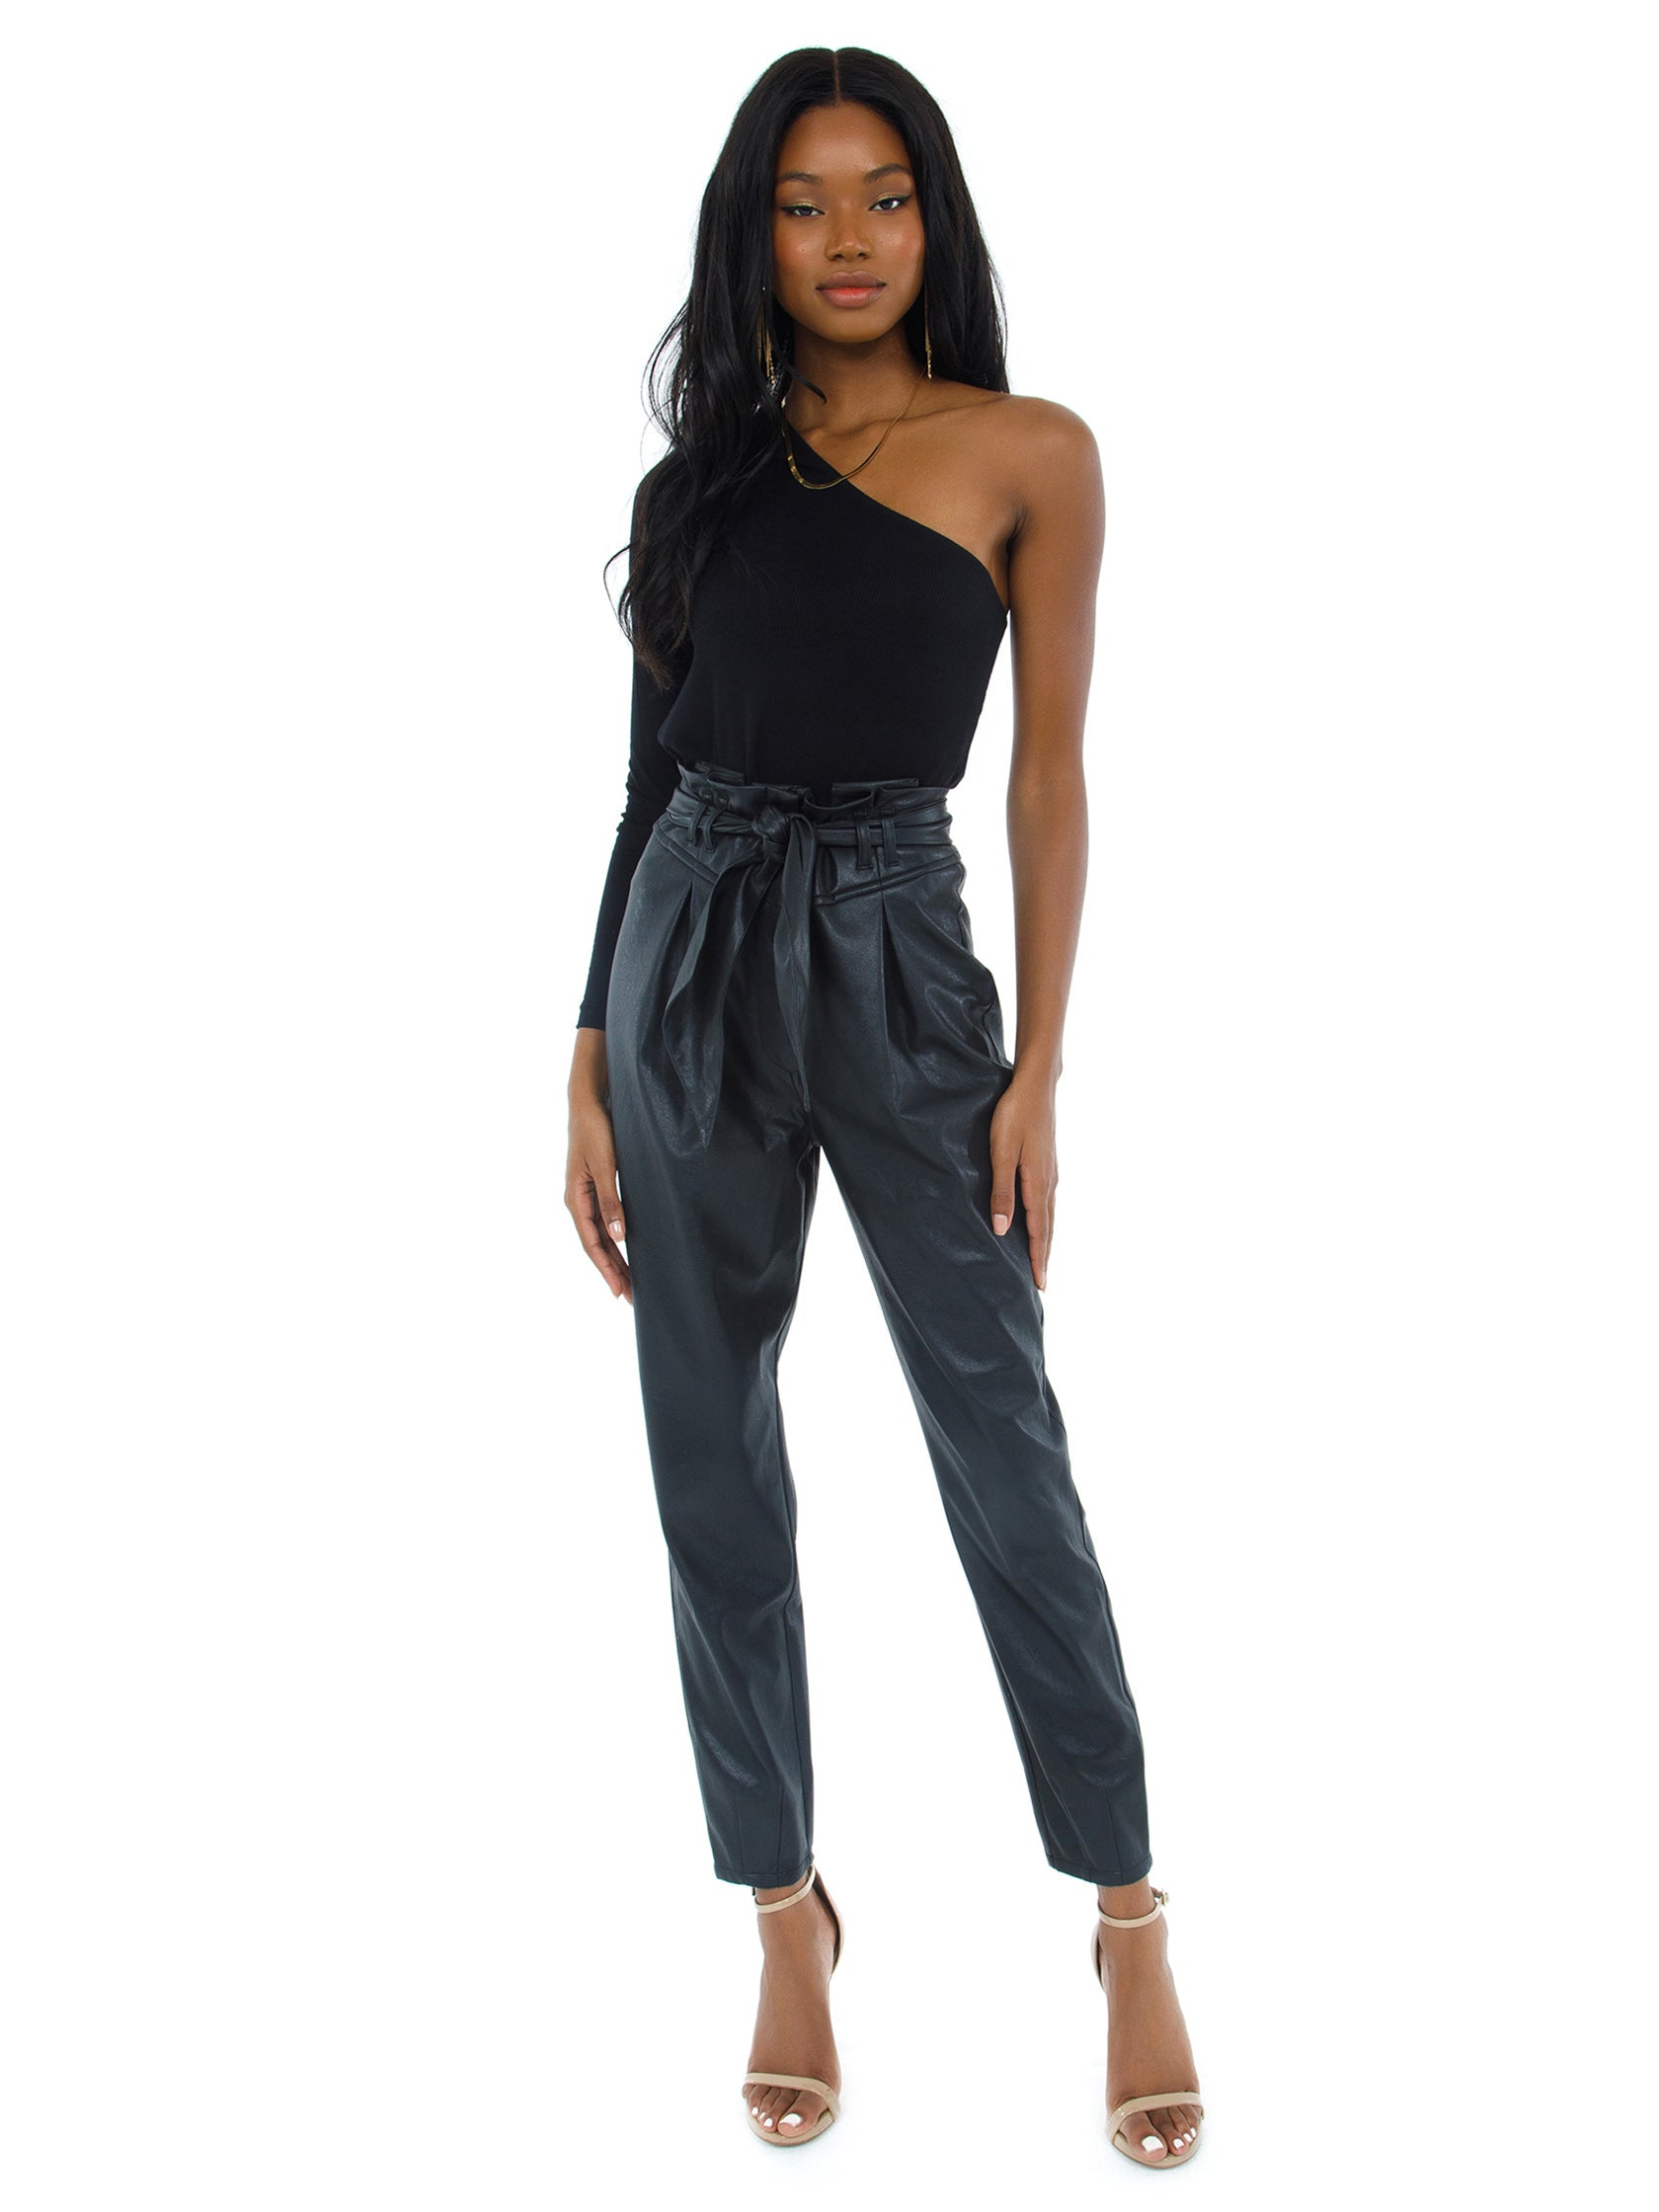 Women wearing a pants rental from For Love & Lemons called Dillon High Waist Pant